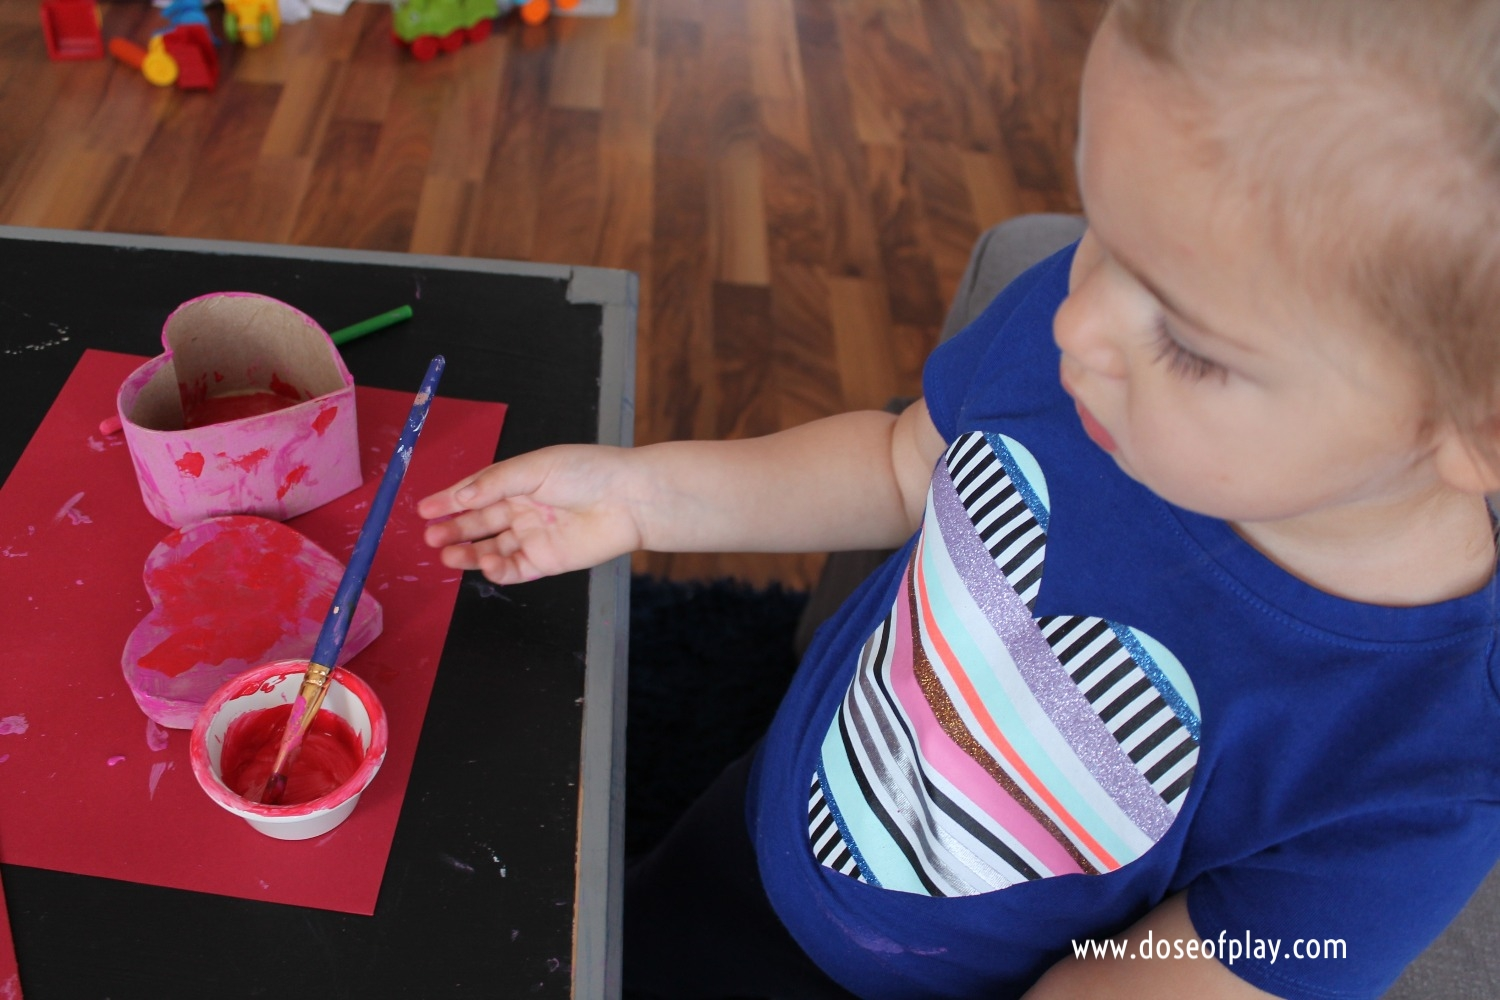 """Separation Anxiety activity for parent and child. Read """"The Kiss Box"""" and each create and exchange heart-shaped boxes to hold each other's kisses. This book and activity softly reminds readers that whether together or apart, love shared with a child goes on and on. #doseofplay #therapeutic play #toddlers #preschool #thekissbox #heartbox #kisses #separationanxiety #firstdayofschool #legacybuilding #parentwithcancer #legacymaking #parentchildbonding #childlife #childlifespecialist #valentinesdaycraft #valentinesday #heartcraft #heartfull"""